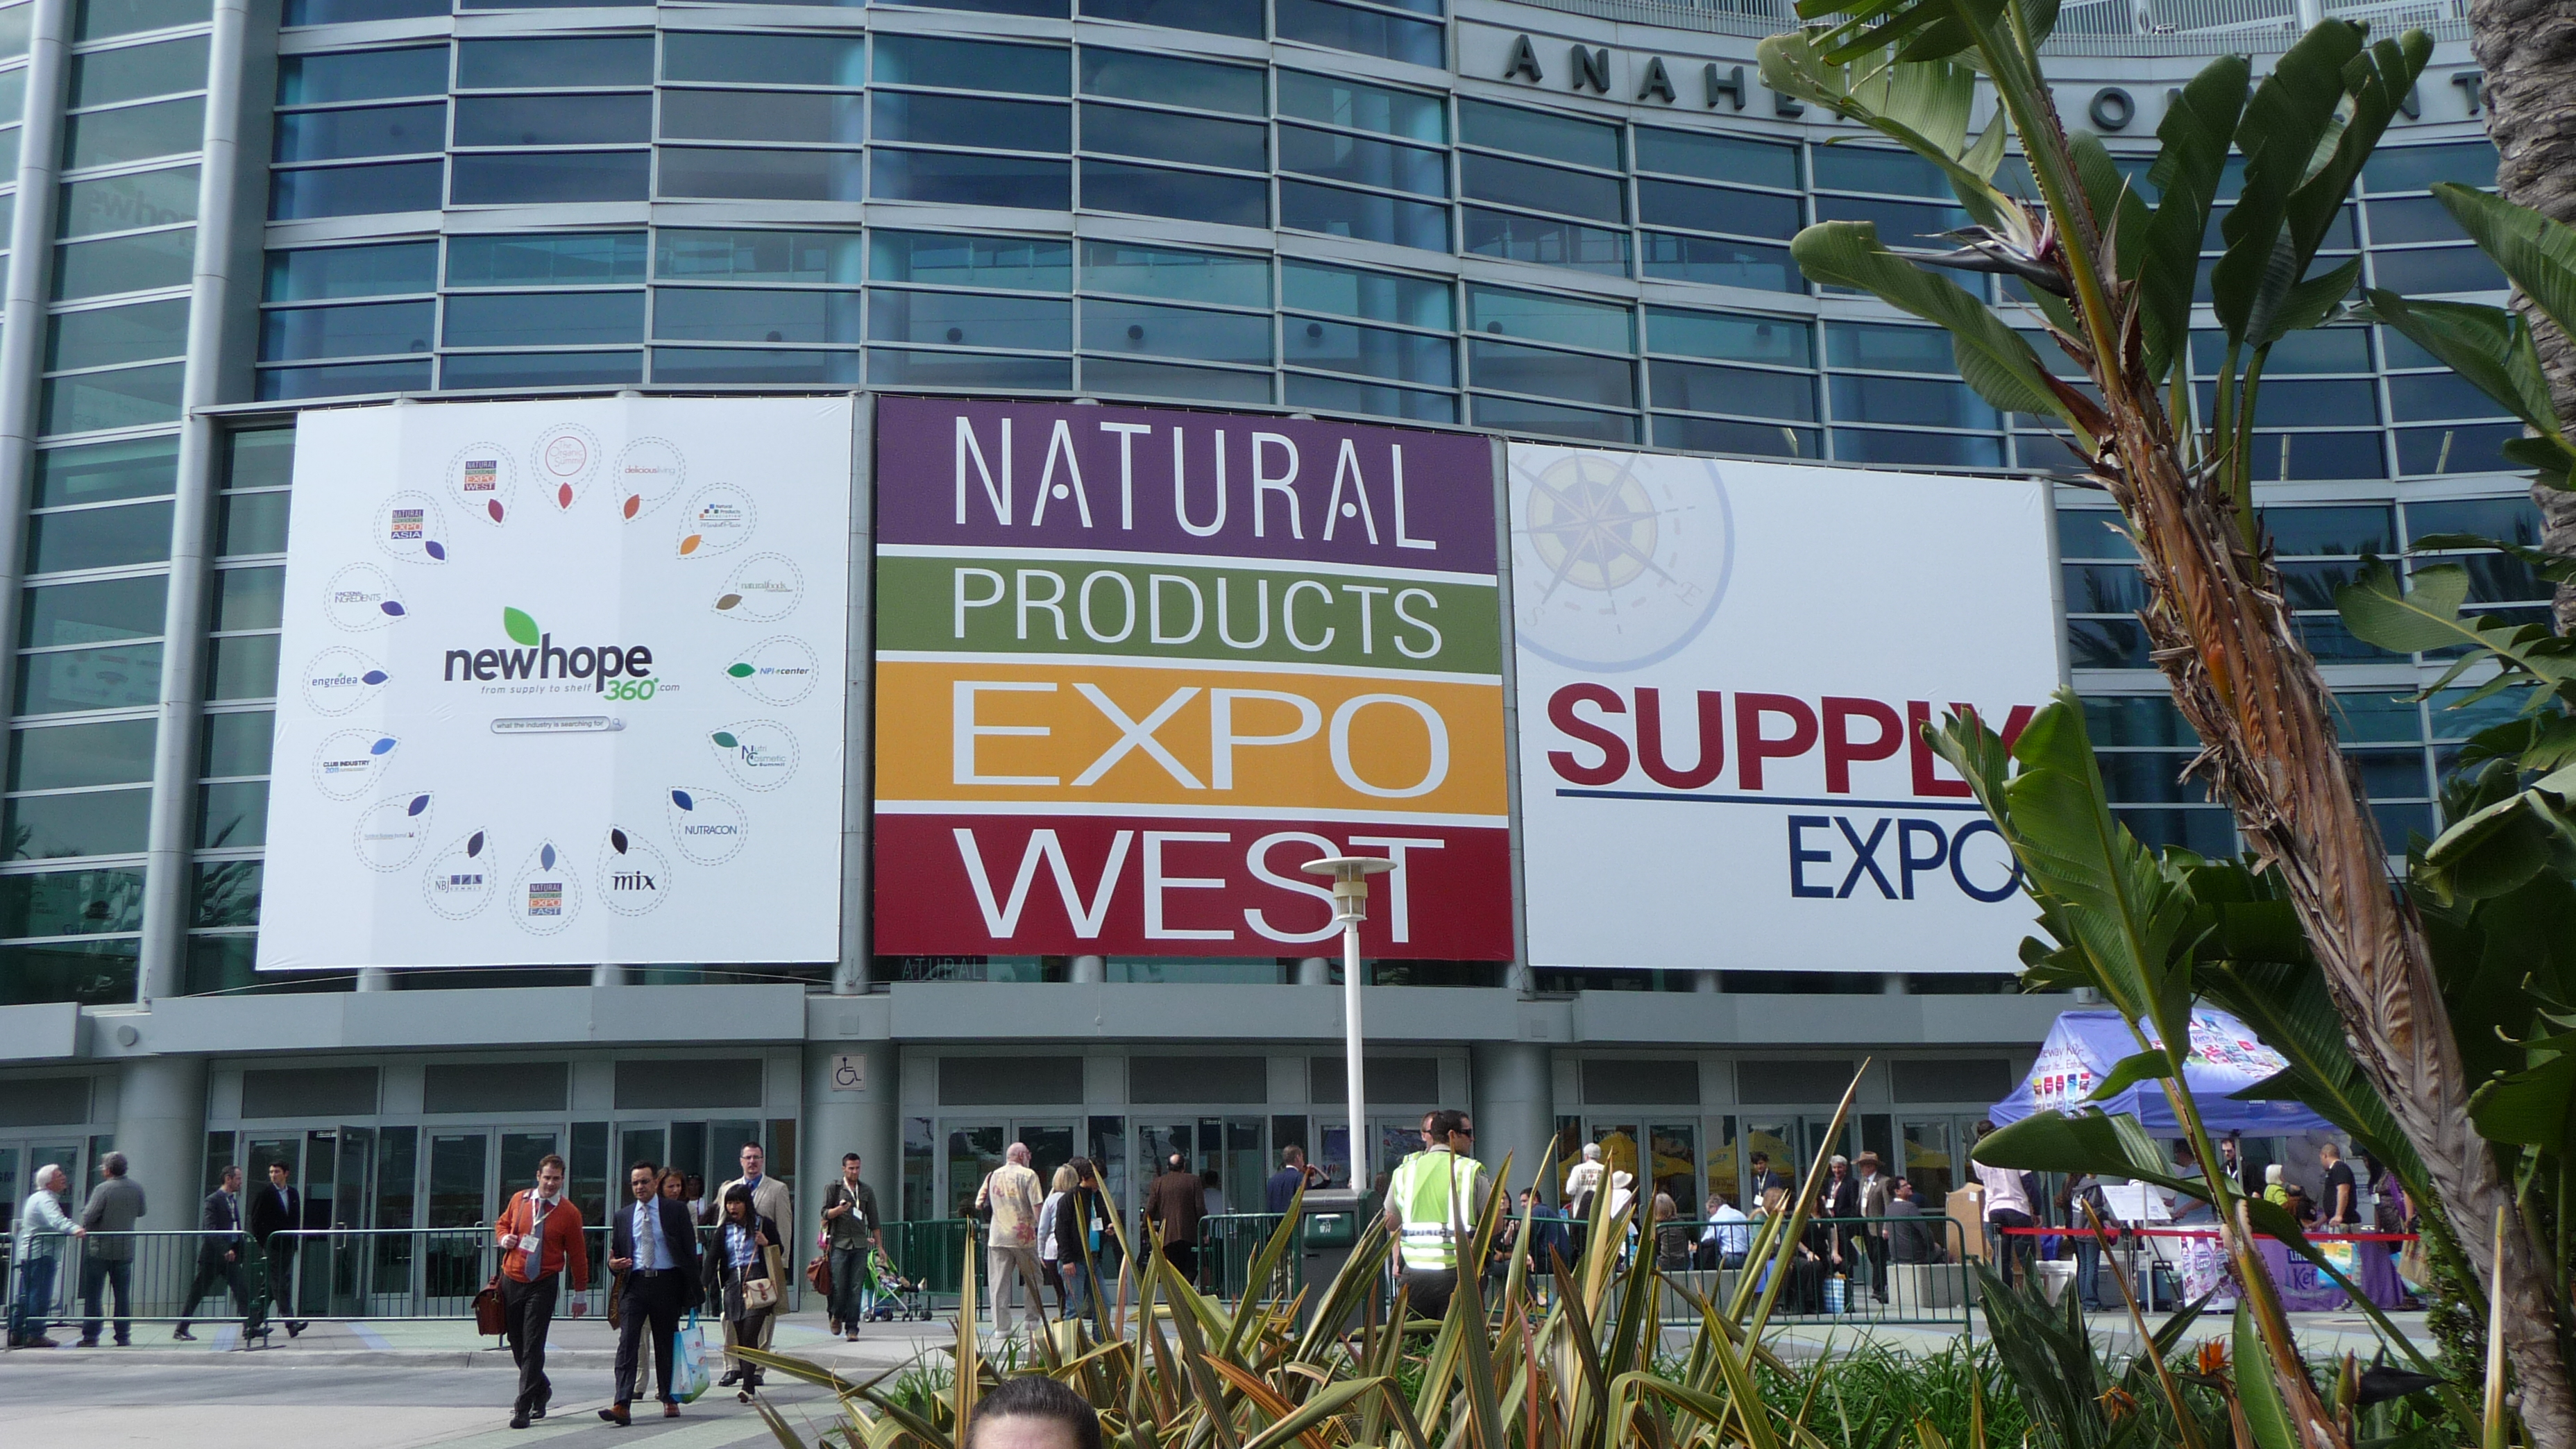 Natural Products Expo West Happymomblogger S Blog